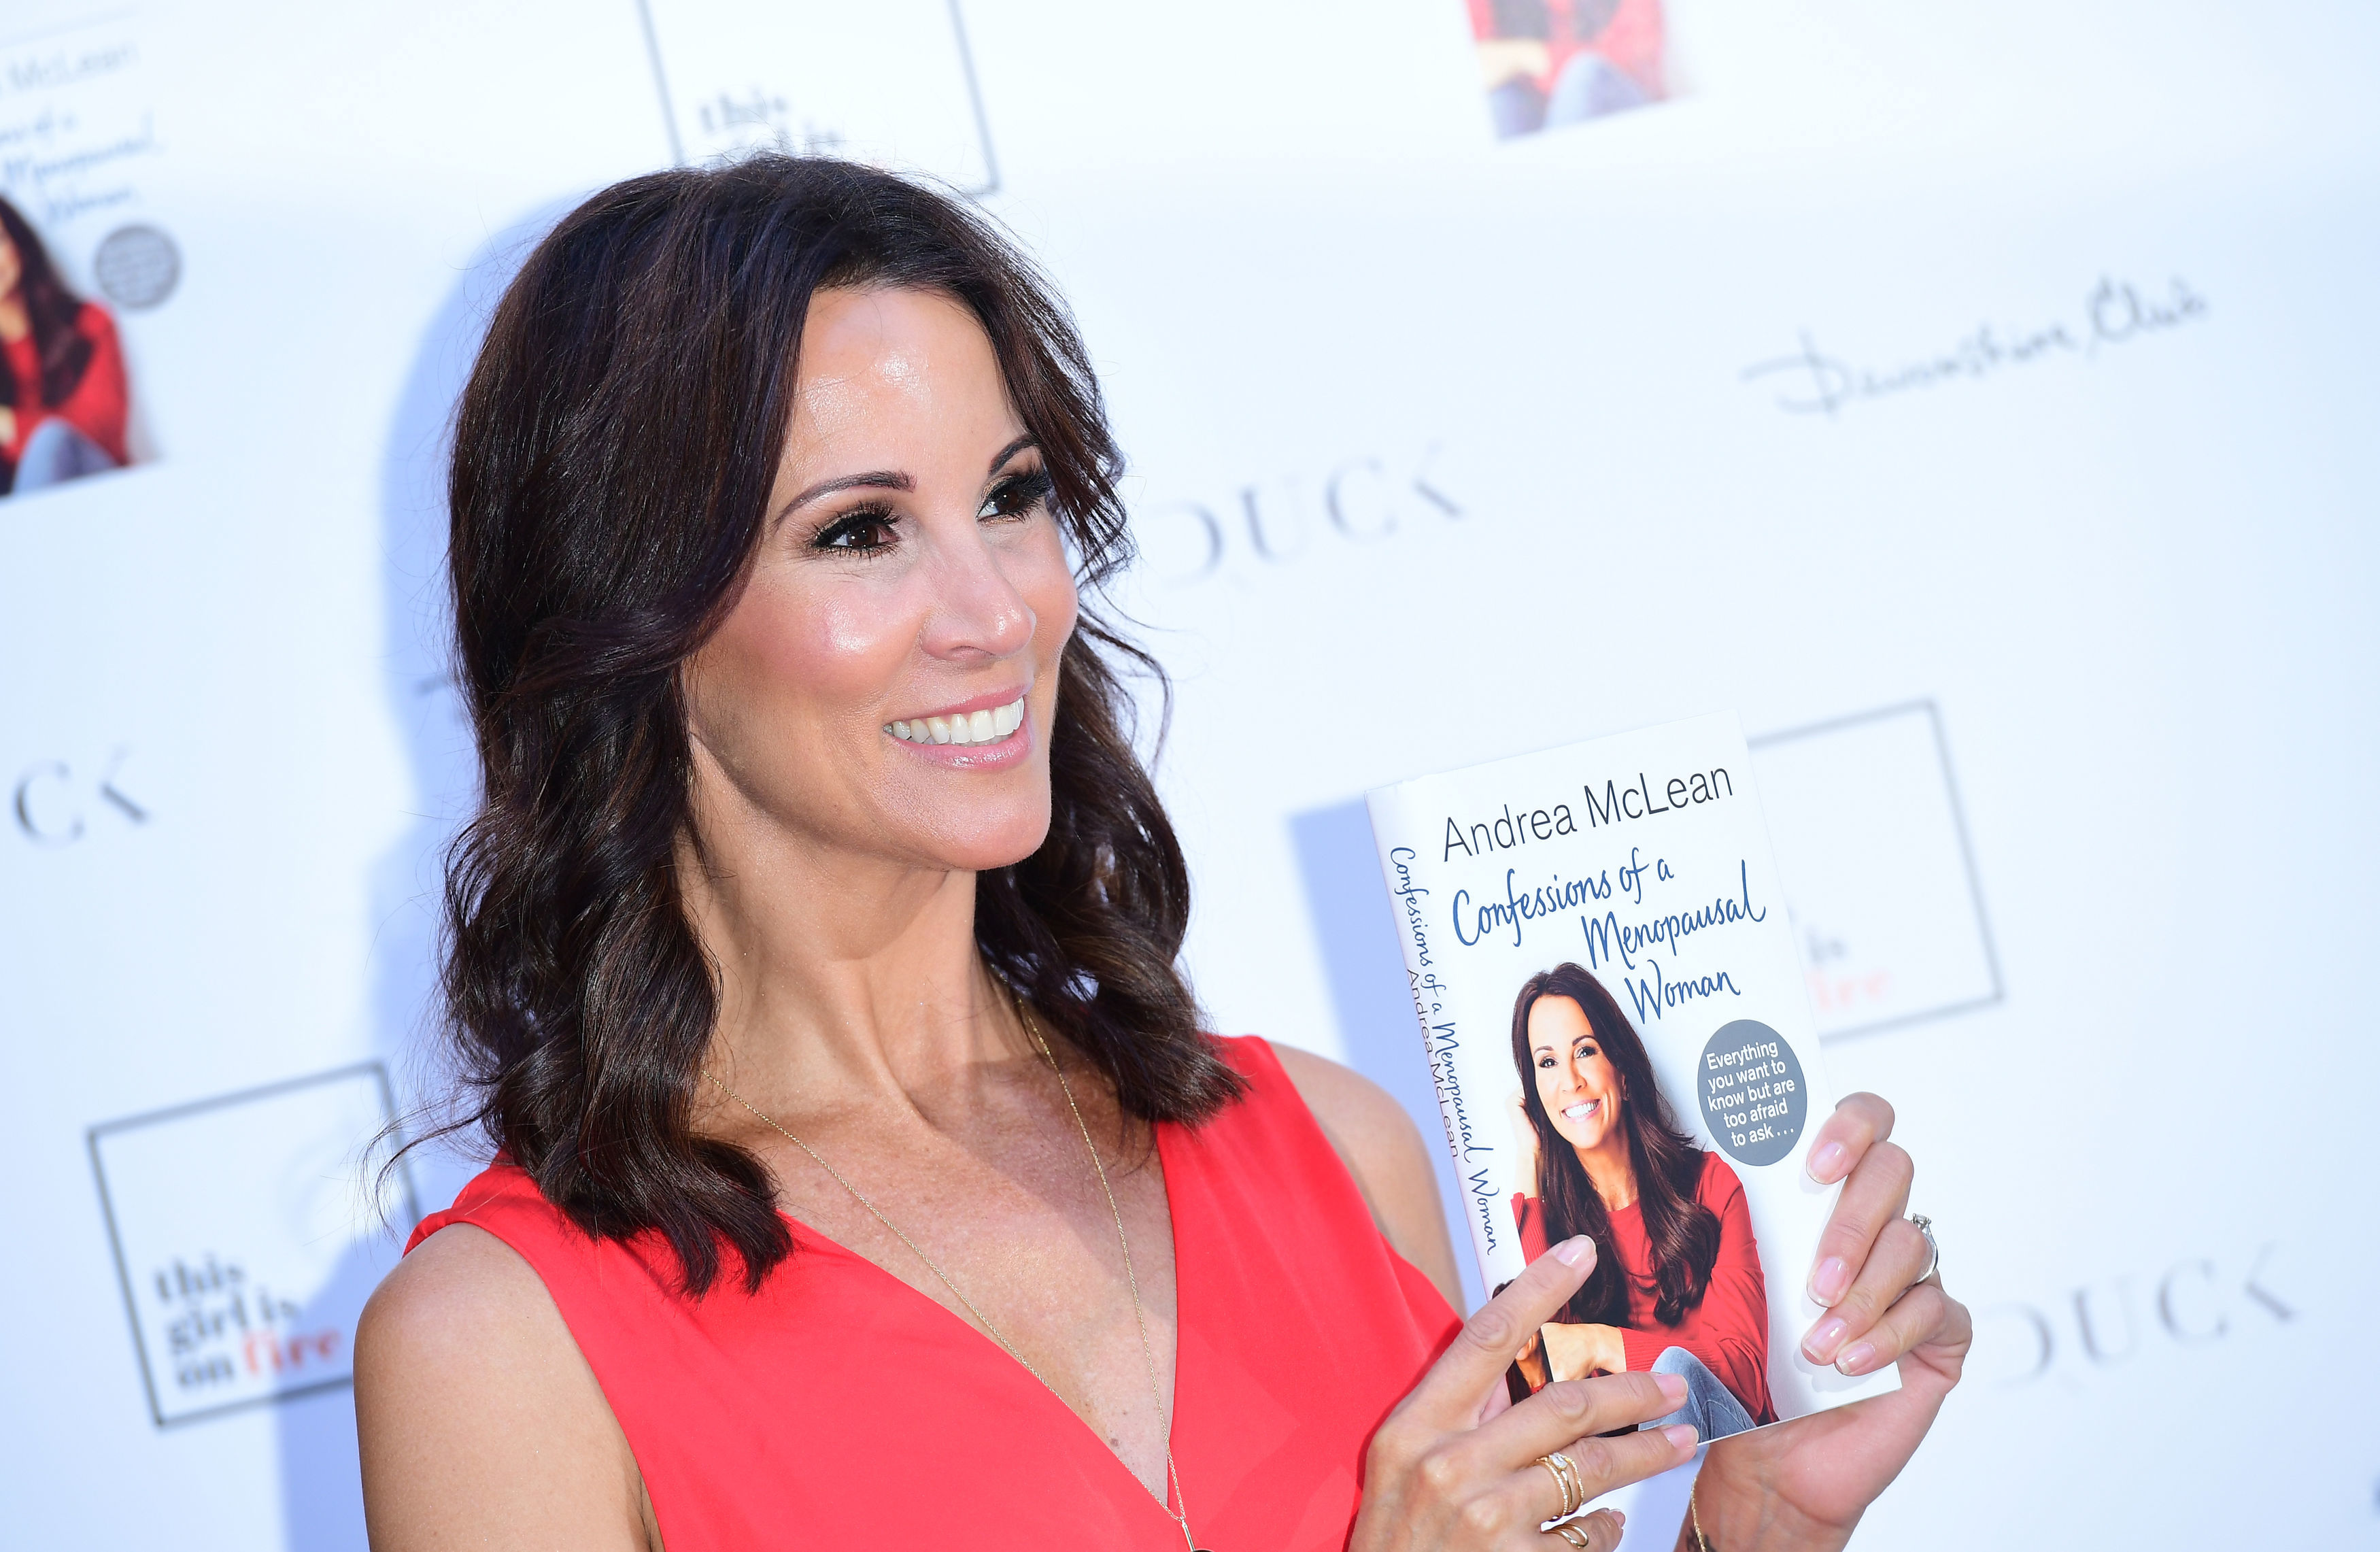 Andrea McLean attending the launch of her new book Confessions of a Menopausal Woman at the Devonshire Club in London. (Photo by Ian West/PA Images via Getty Images)